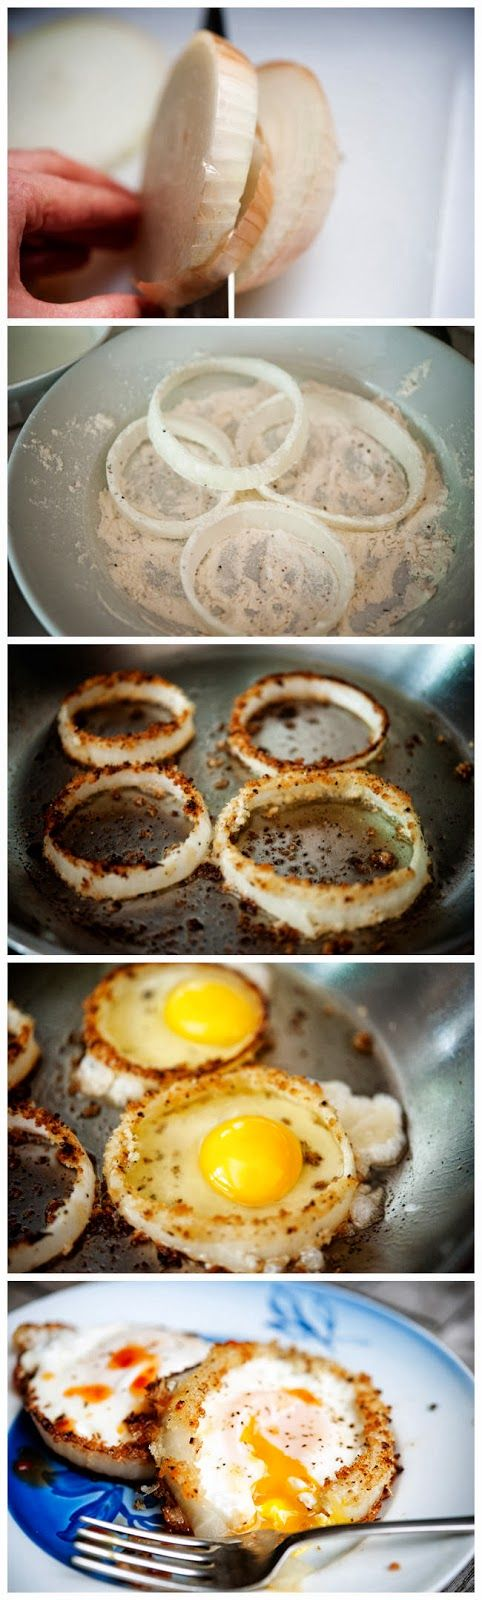 A fun twist on egg-in-the-hole and a great excuse to have onion rings for breakfast! Oh I'm so intrigued! Yum!